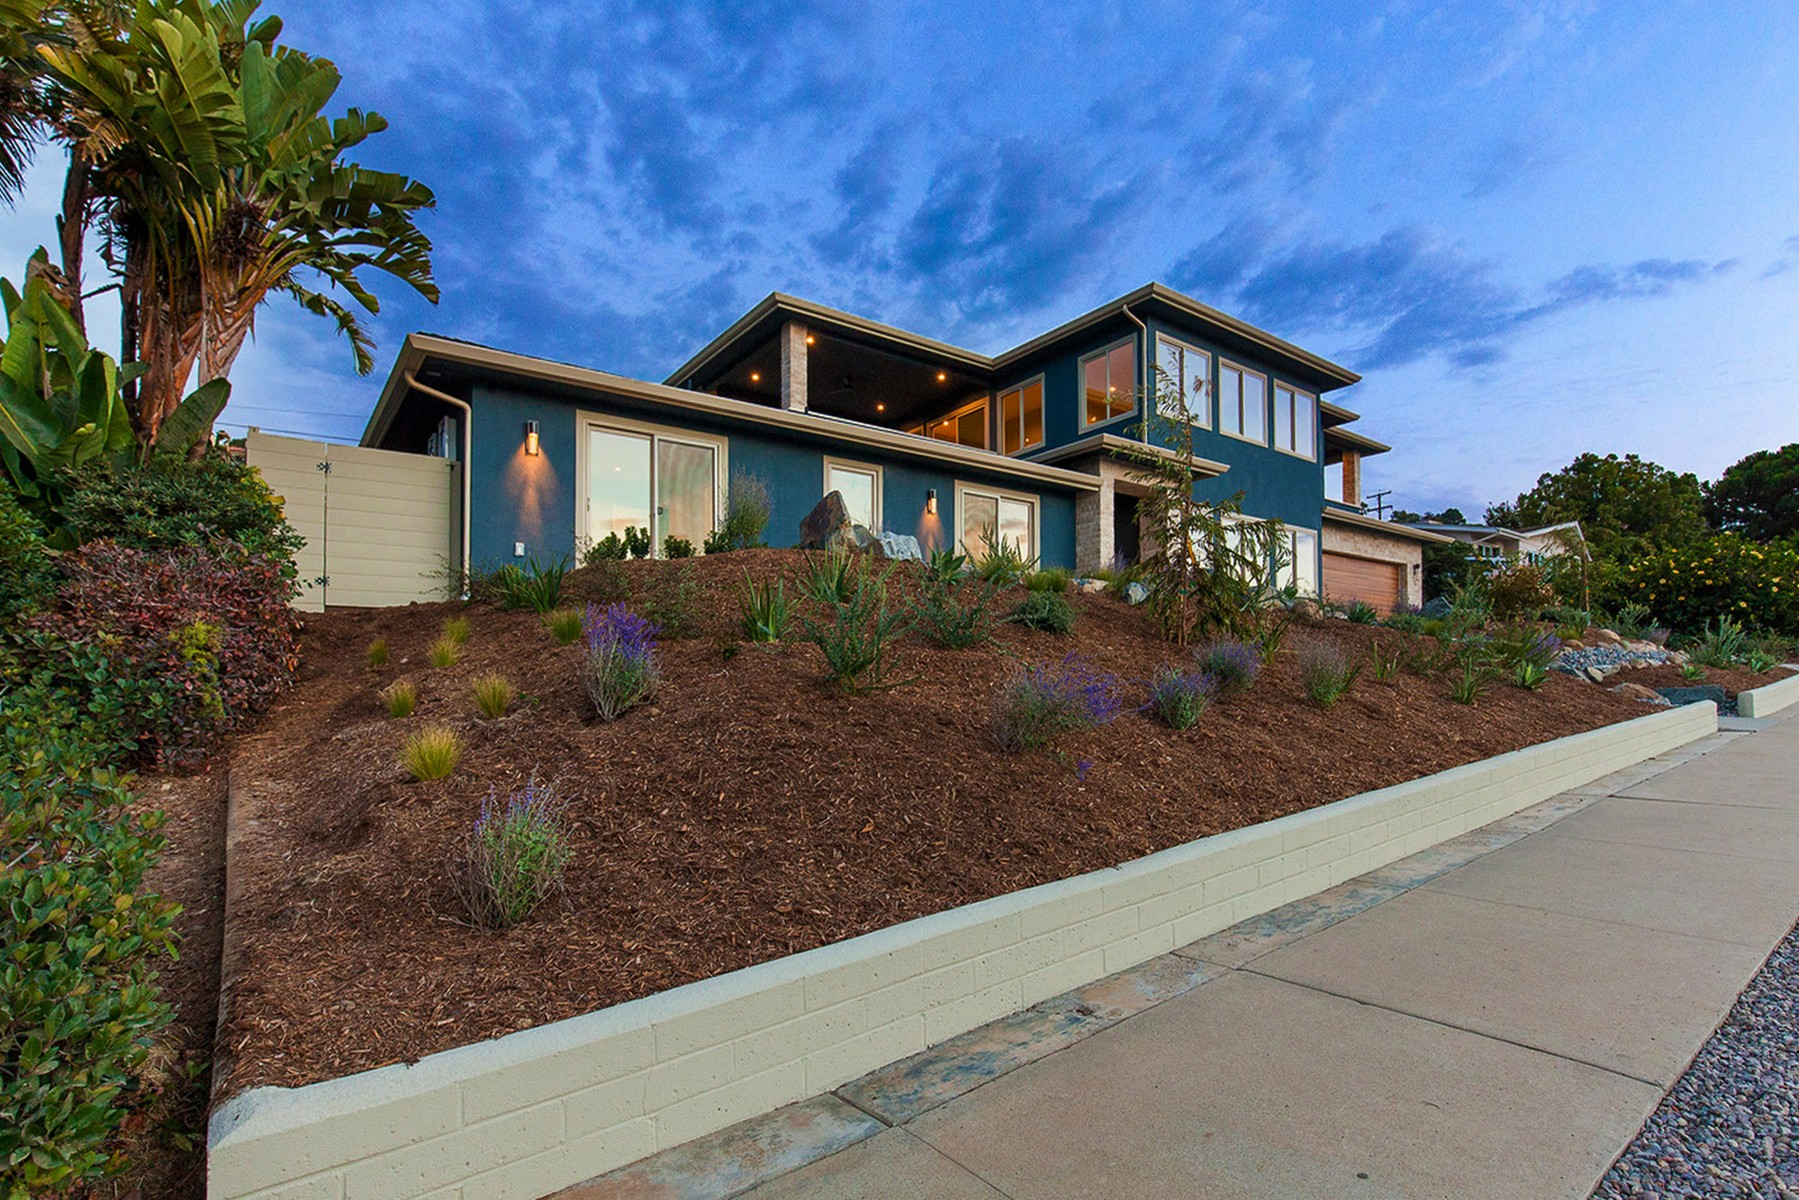 Additional photo for property listing at 6645 Avenida De Las Pescas  La Jolla, Калифорния 92037 Соединенные Штаты